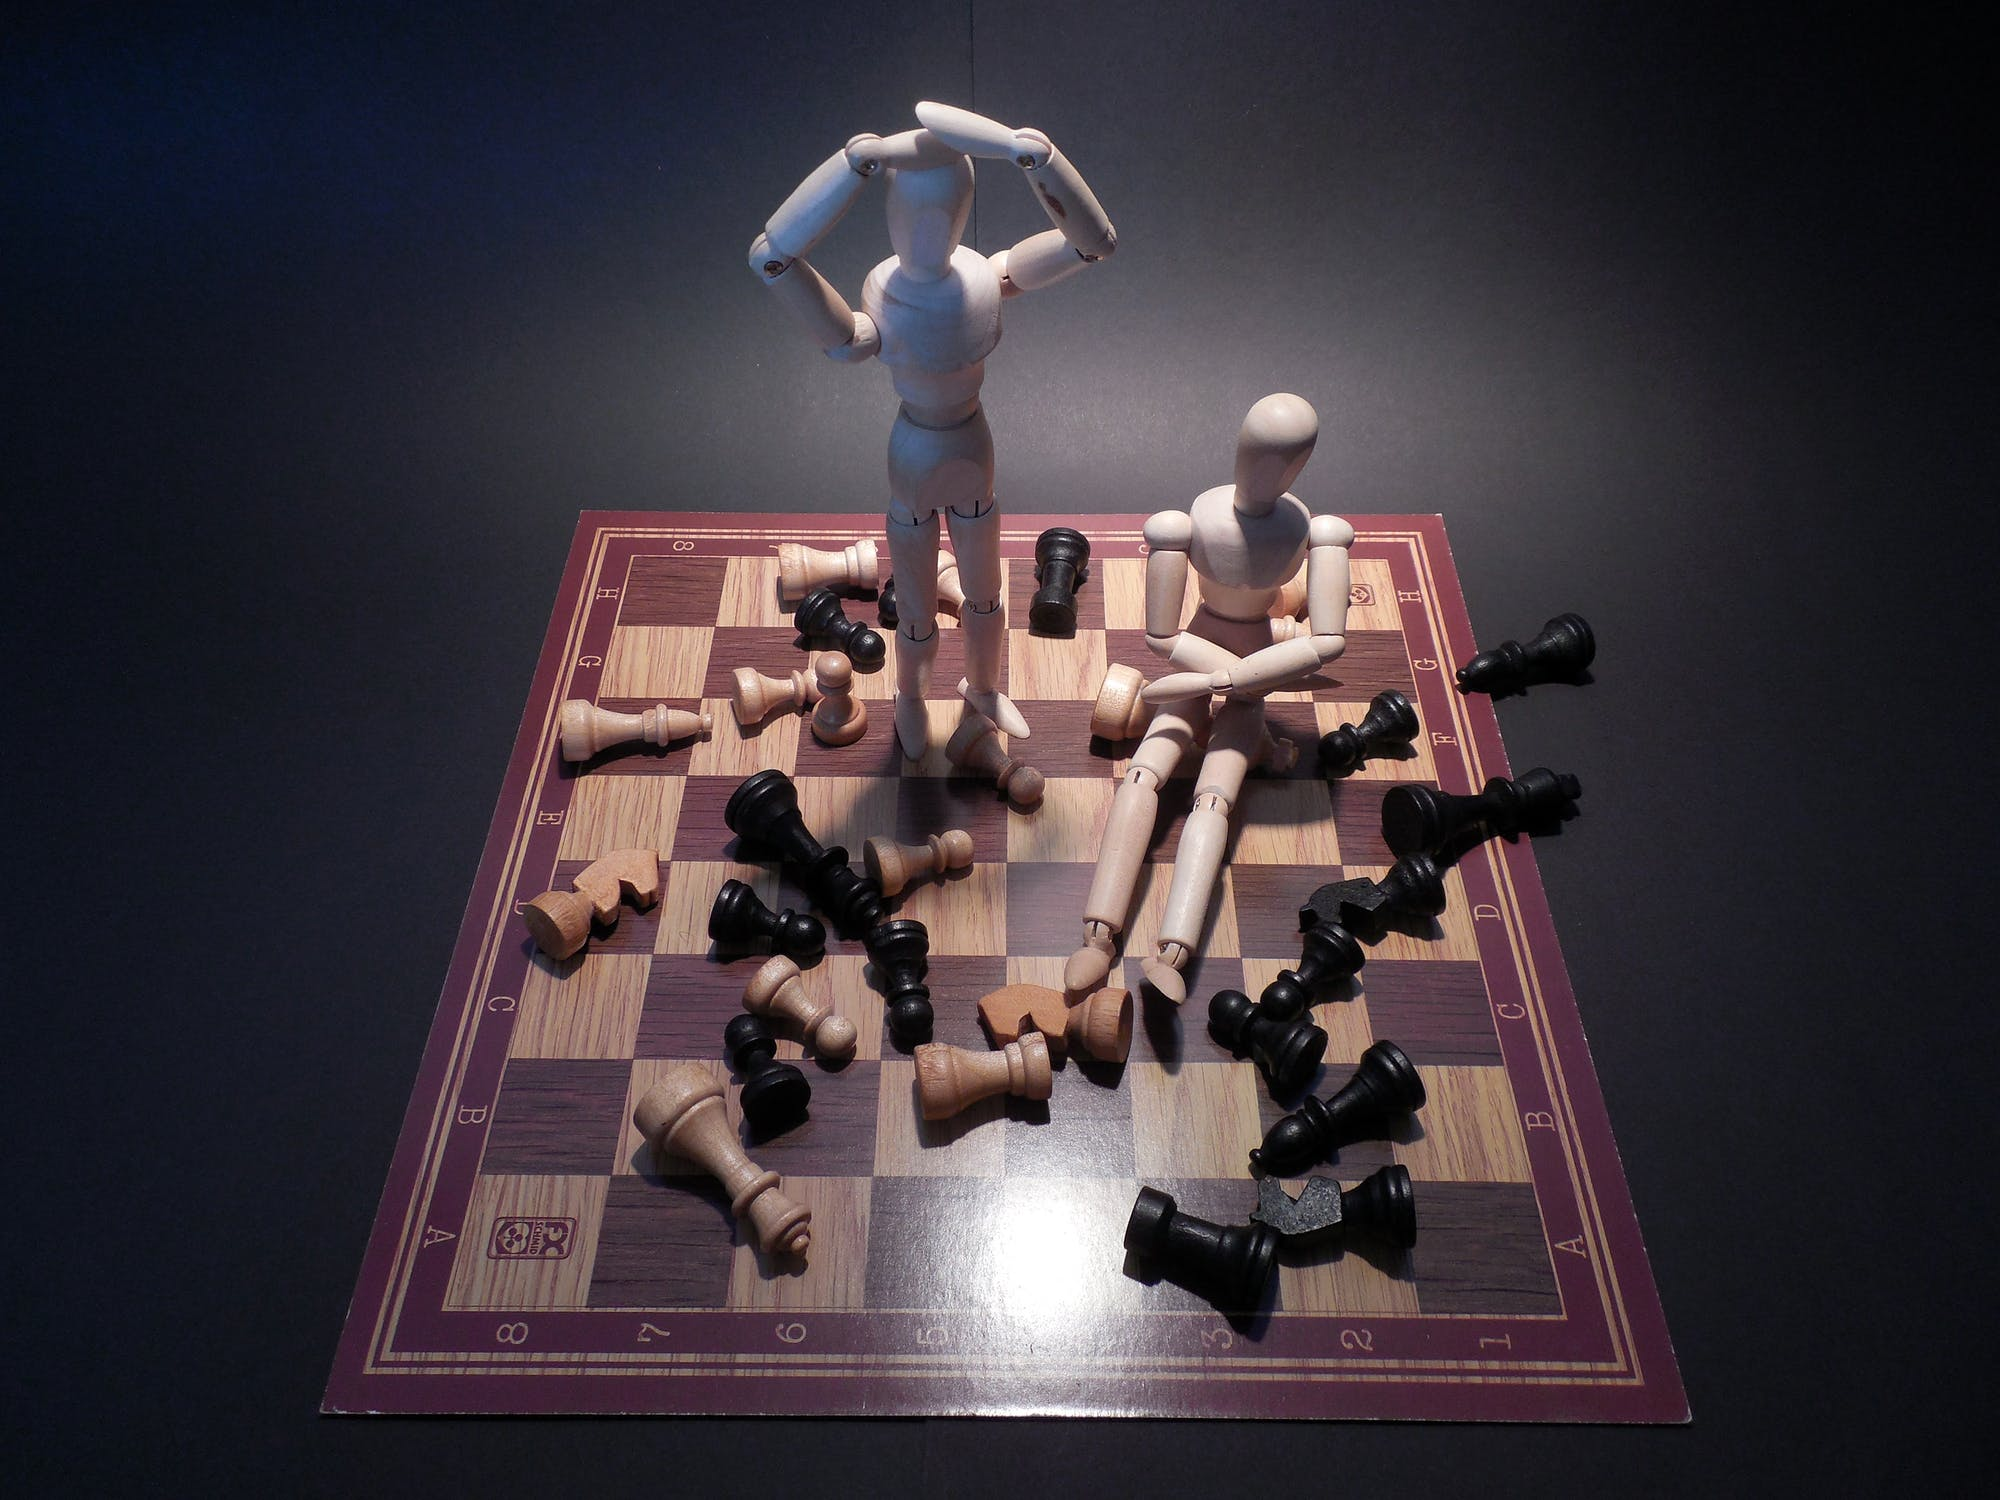 Human figures sharing chess board with chess pieces